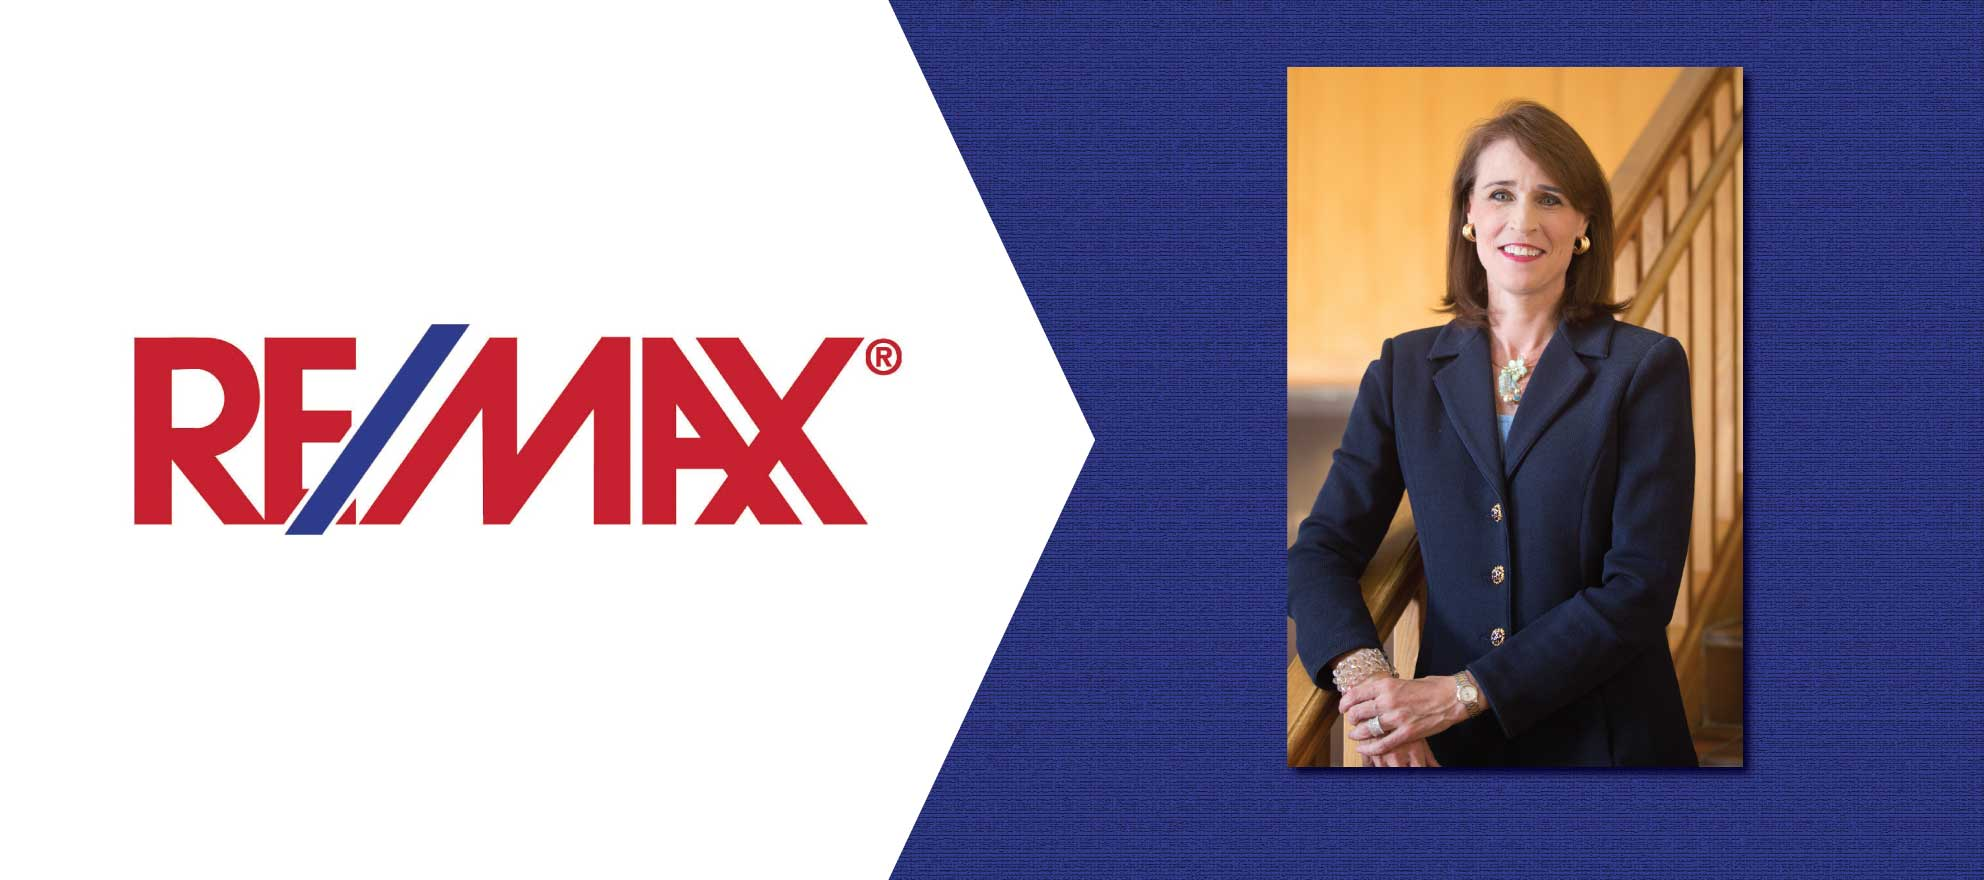 Re/Max names university president to board of directors